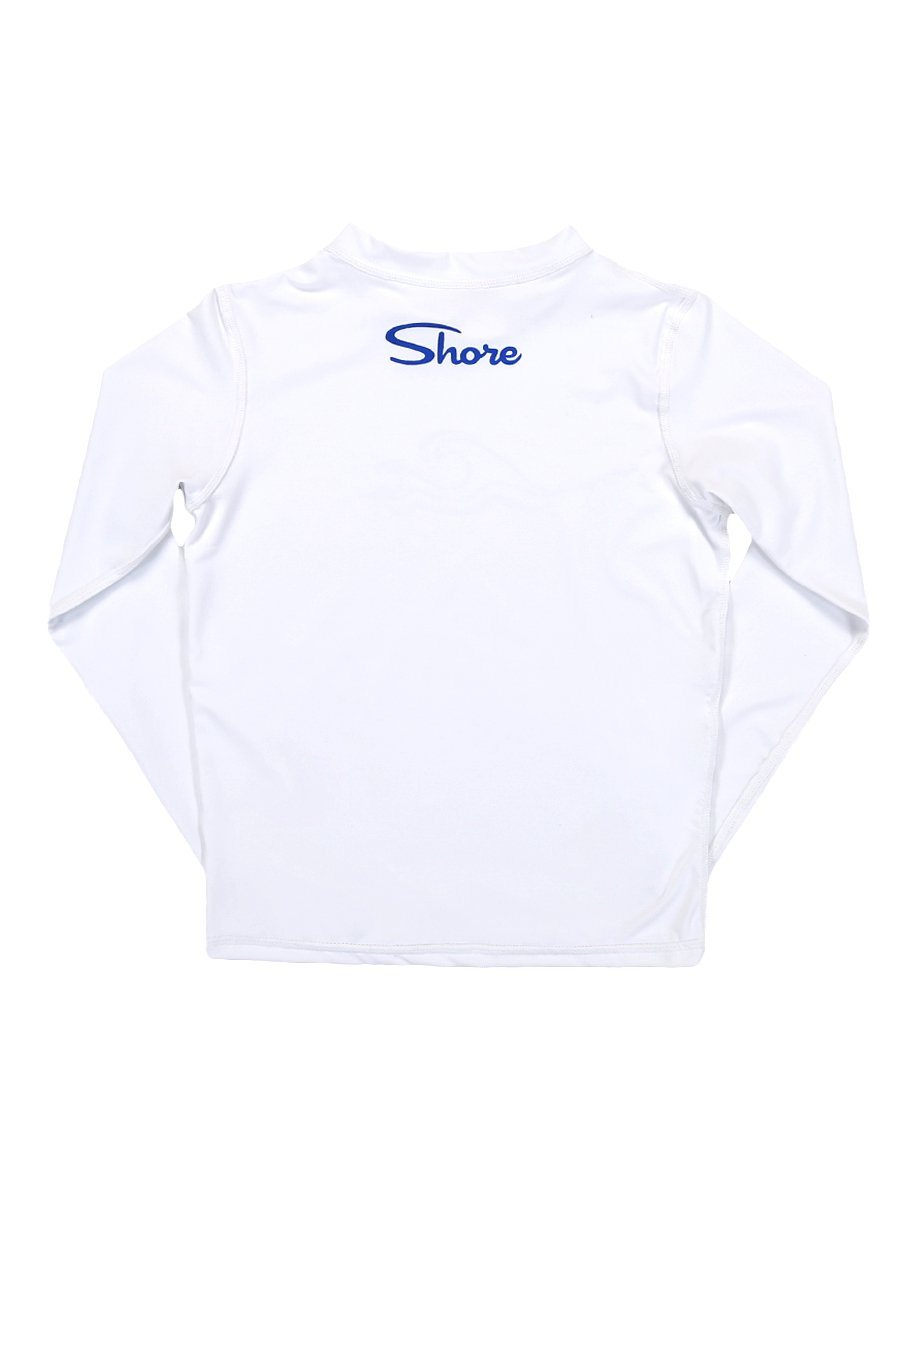 Kids Wave L/S Rashguard - White - Shore